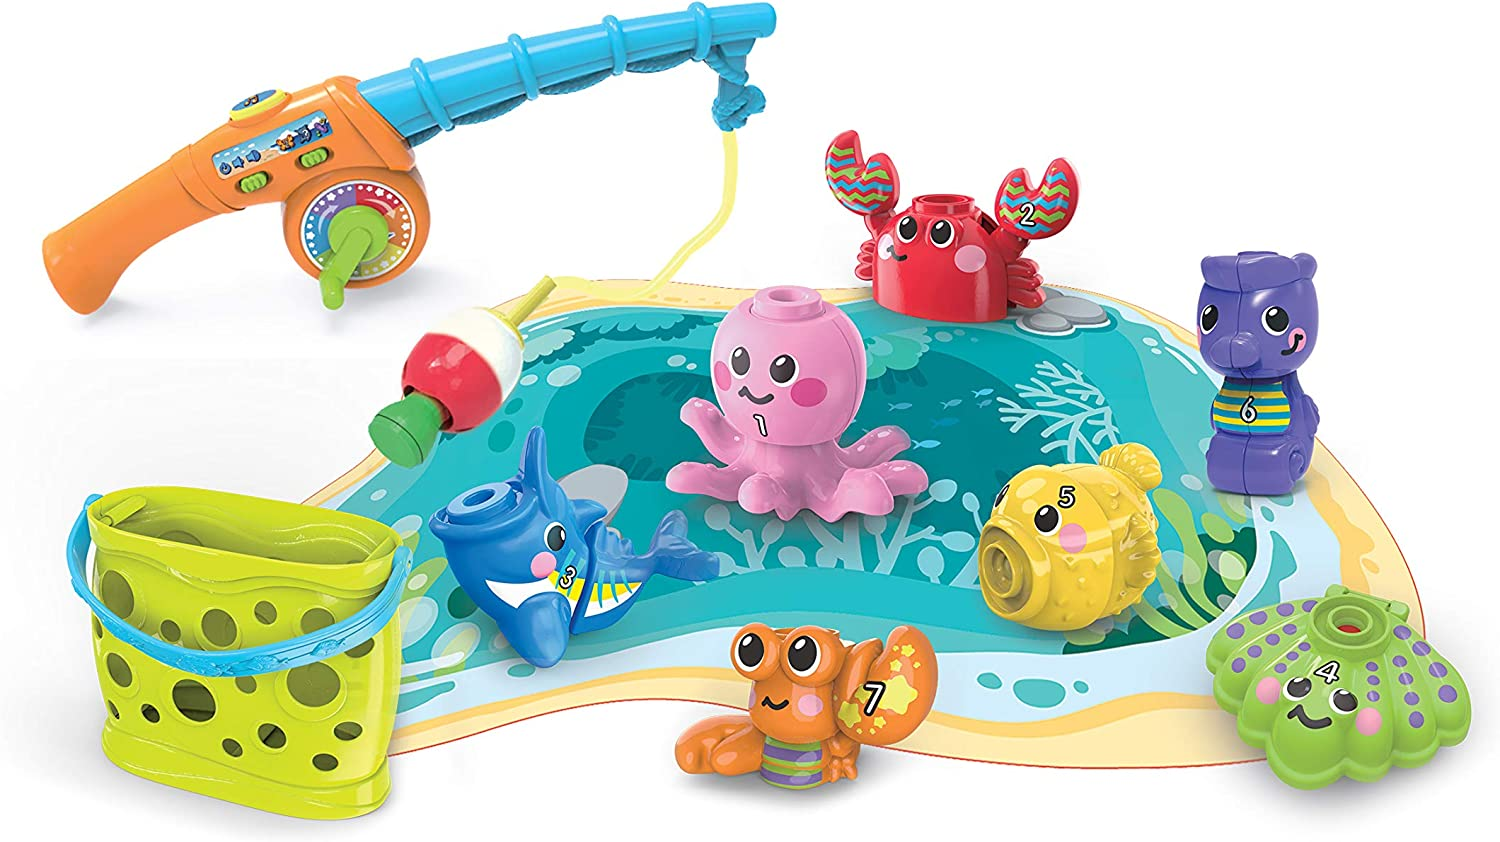 VTech Wiggle and Jiggle Fishing Fun, Educational Toy with Sea Animal Characters, Interactive Baby Toy for Sensory Play, Learning Games with Sounds and Phrases, Suitable for Girls and Boys 2 Years + :